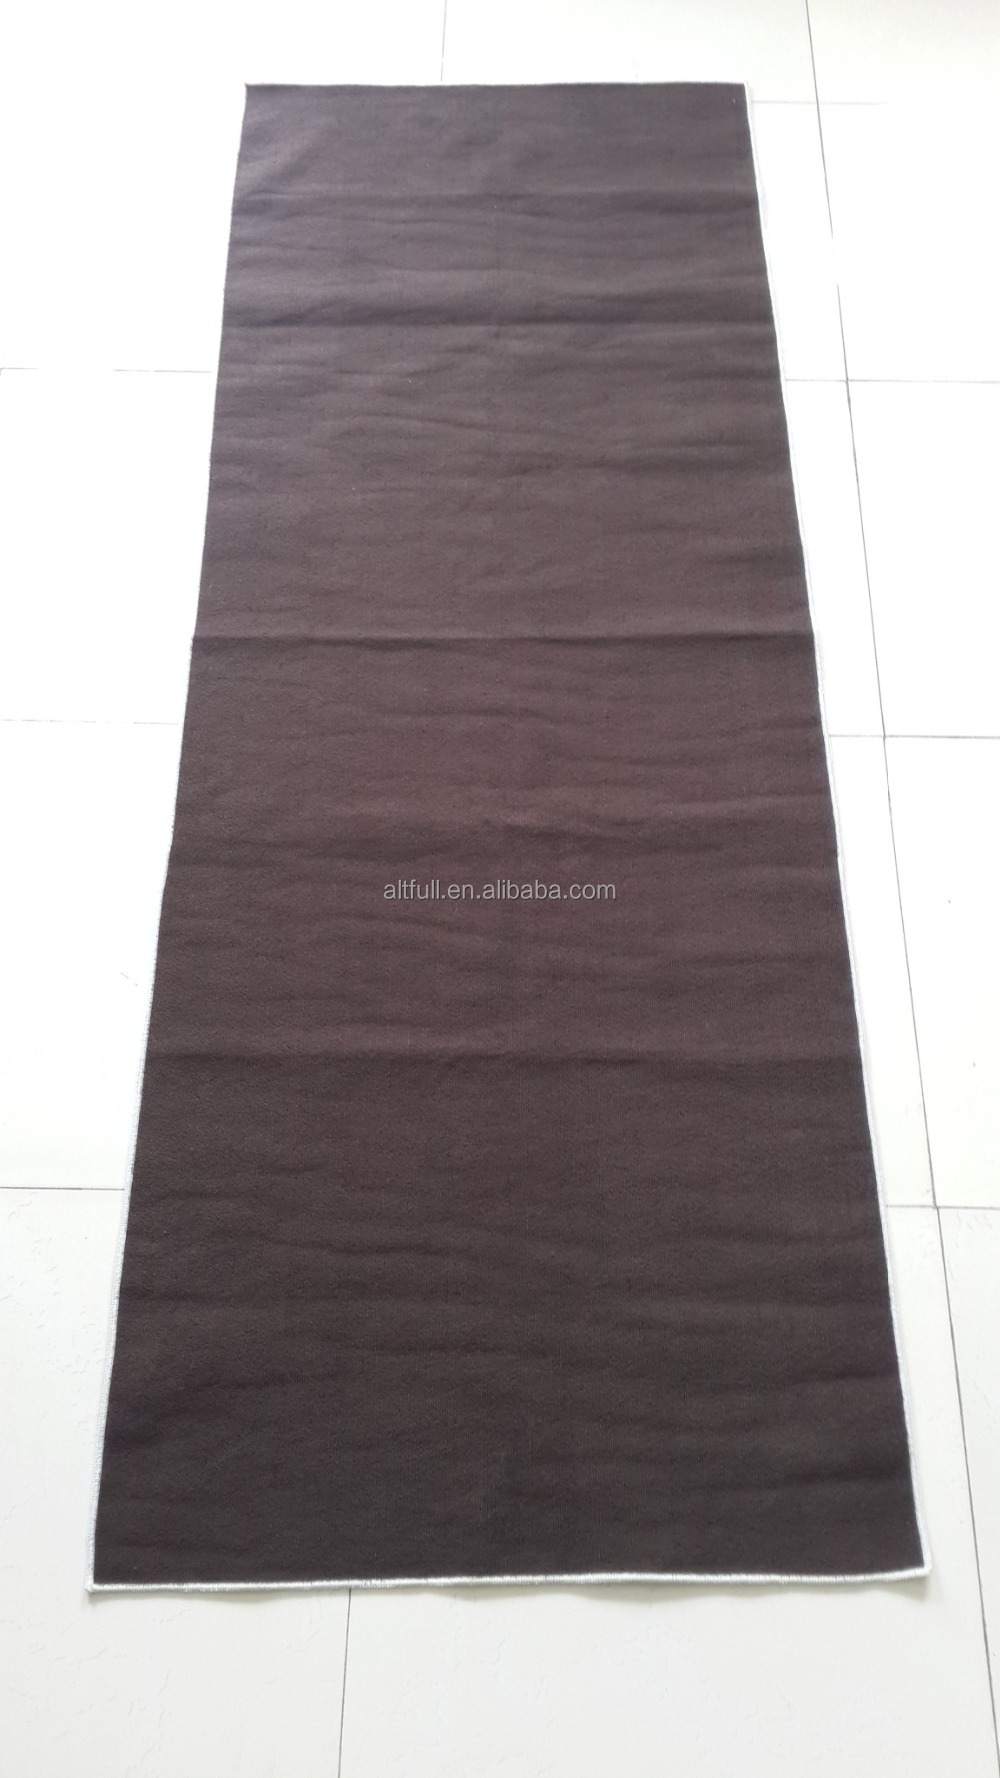 wholesale alibaba non-slip suede microfiber yoga towel with paper tapes,yoga mate